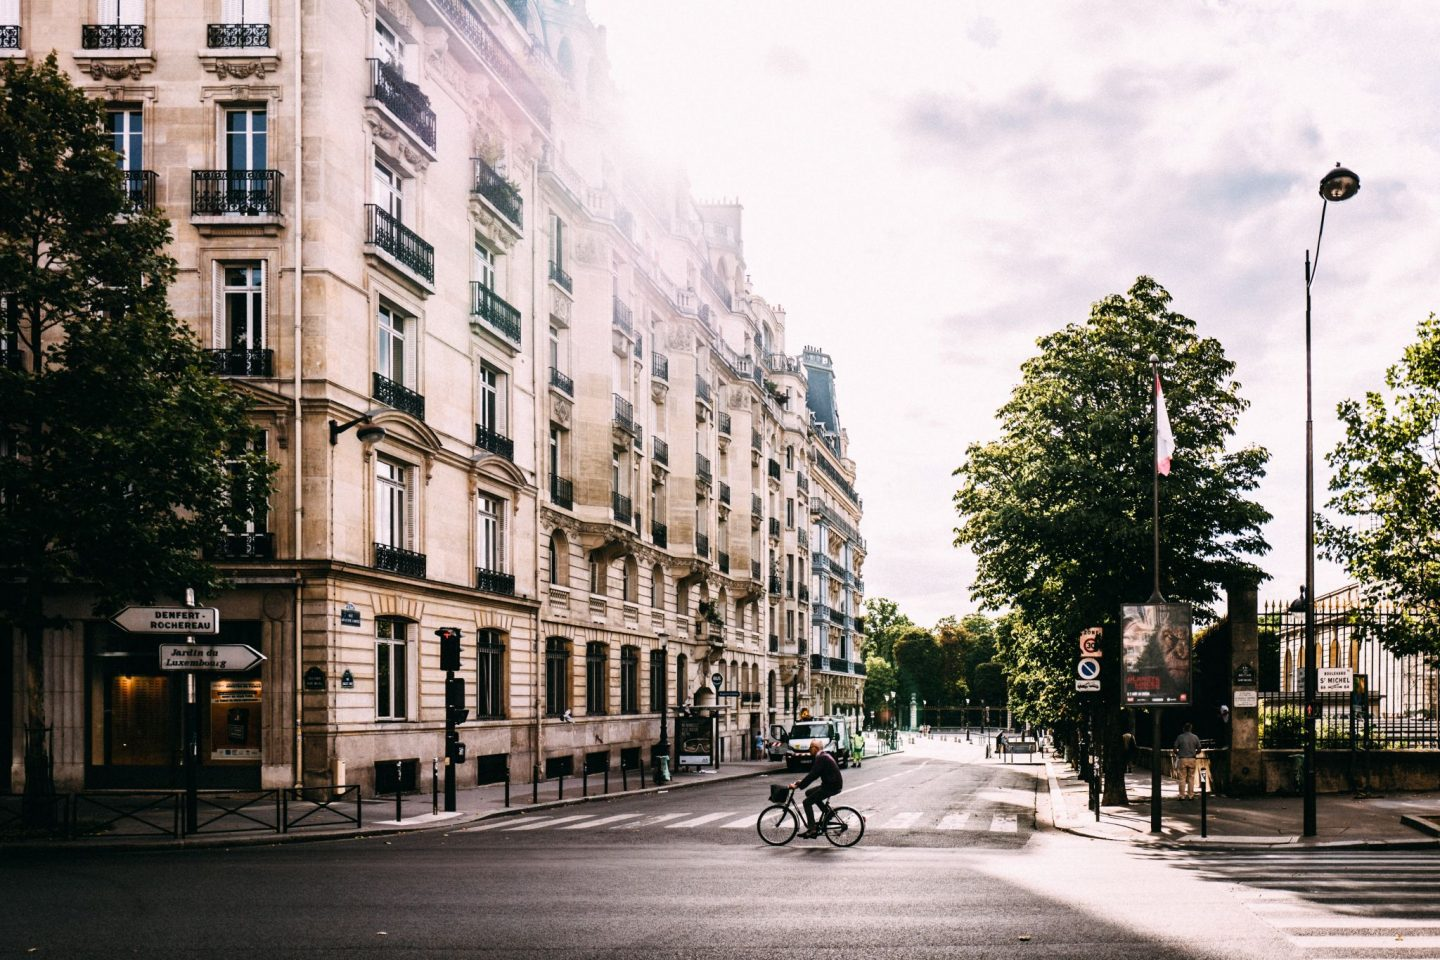 street, cute, bike, buildings, city, paris, guide